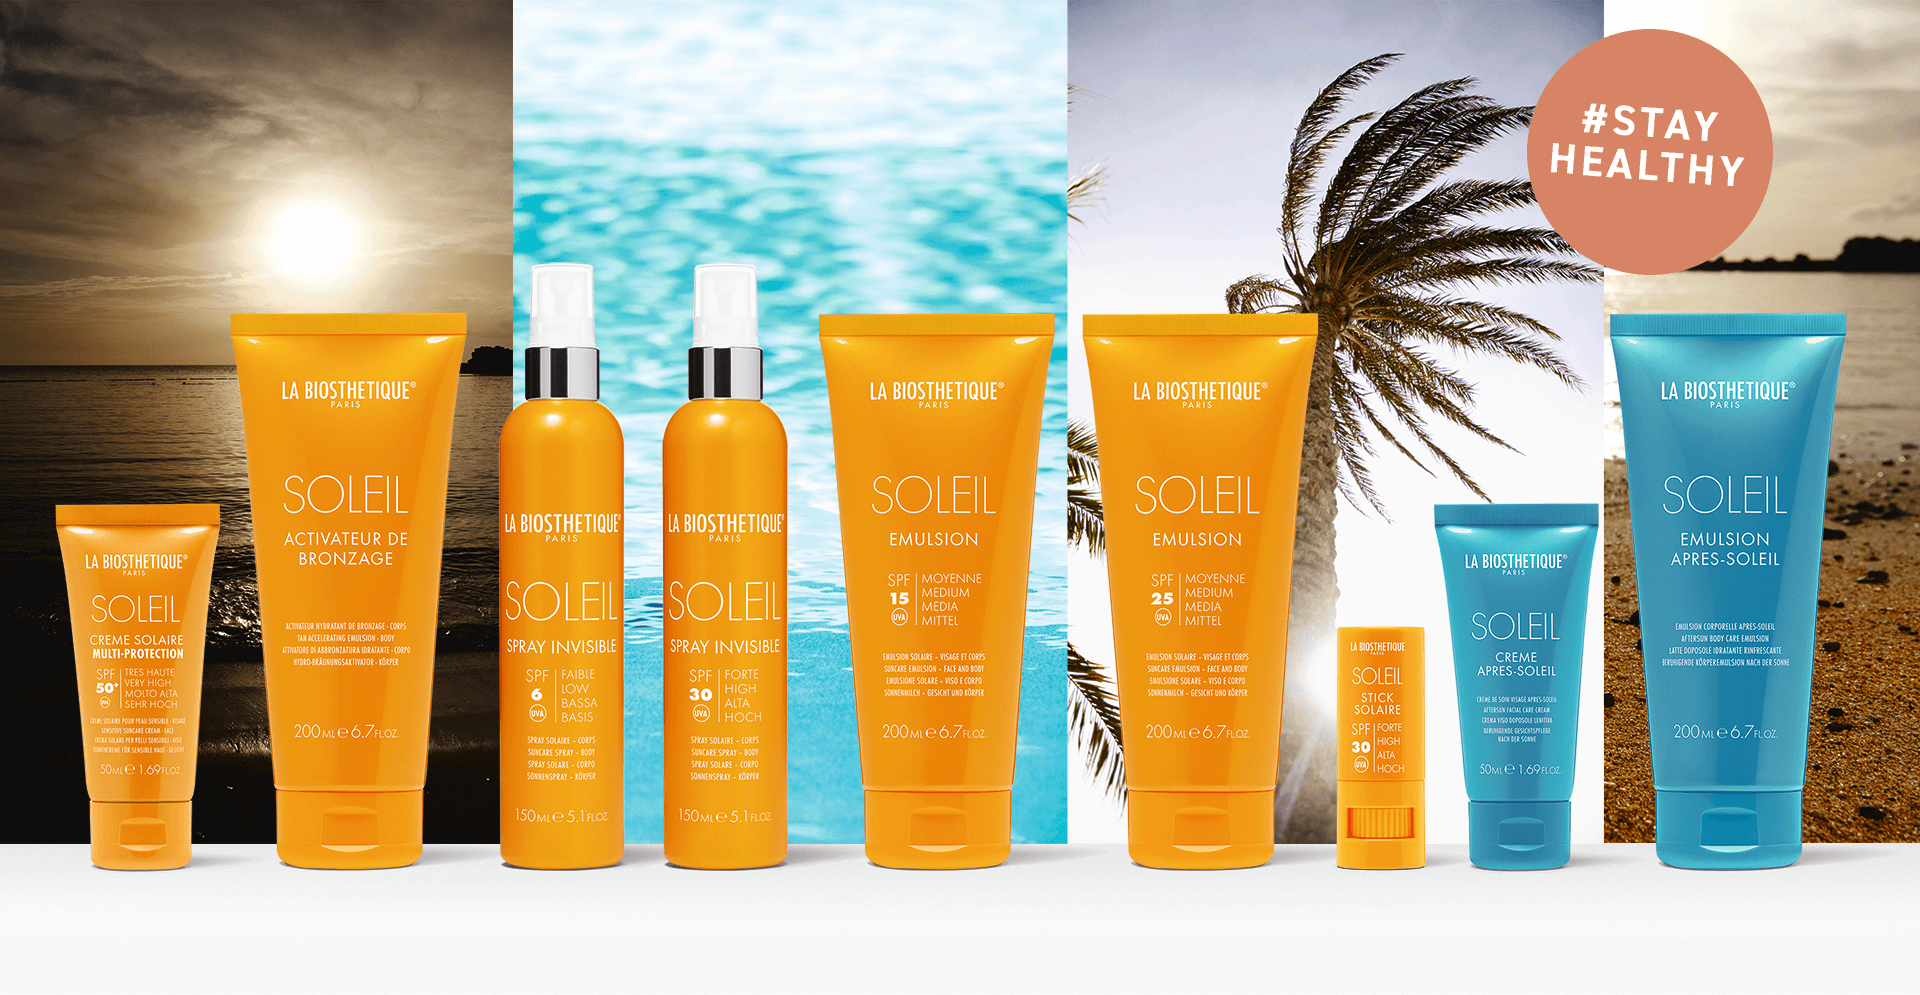 Skin_Soleil_Group_9_Products_01.2016_CMYK_U